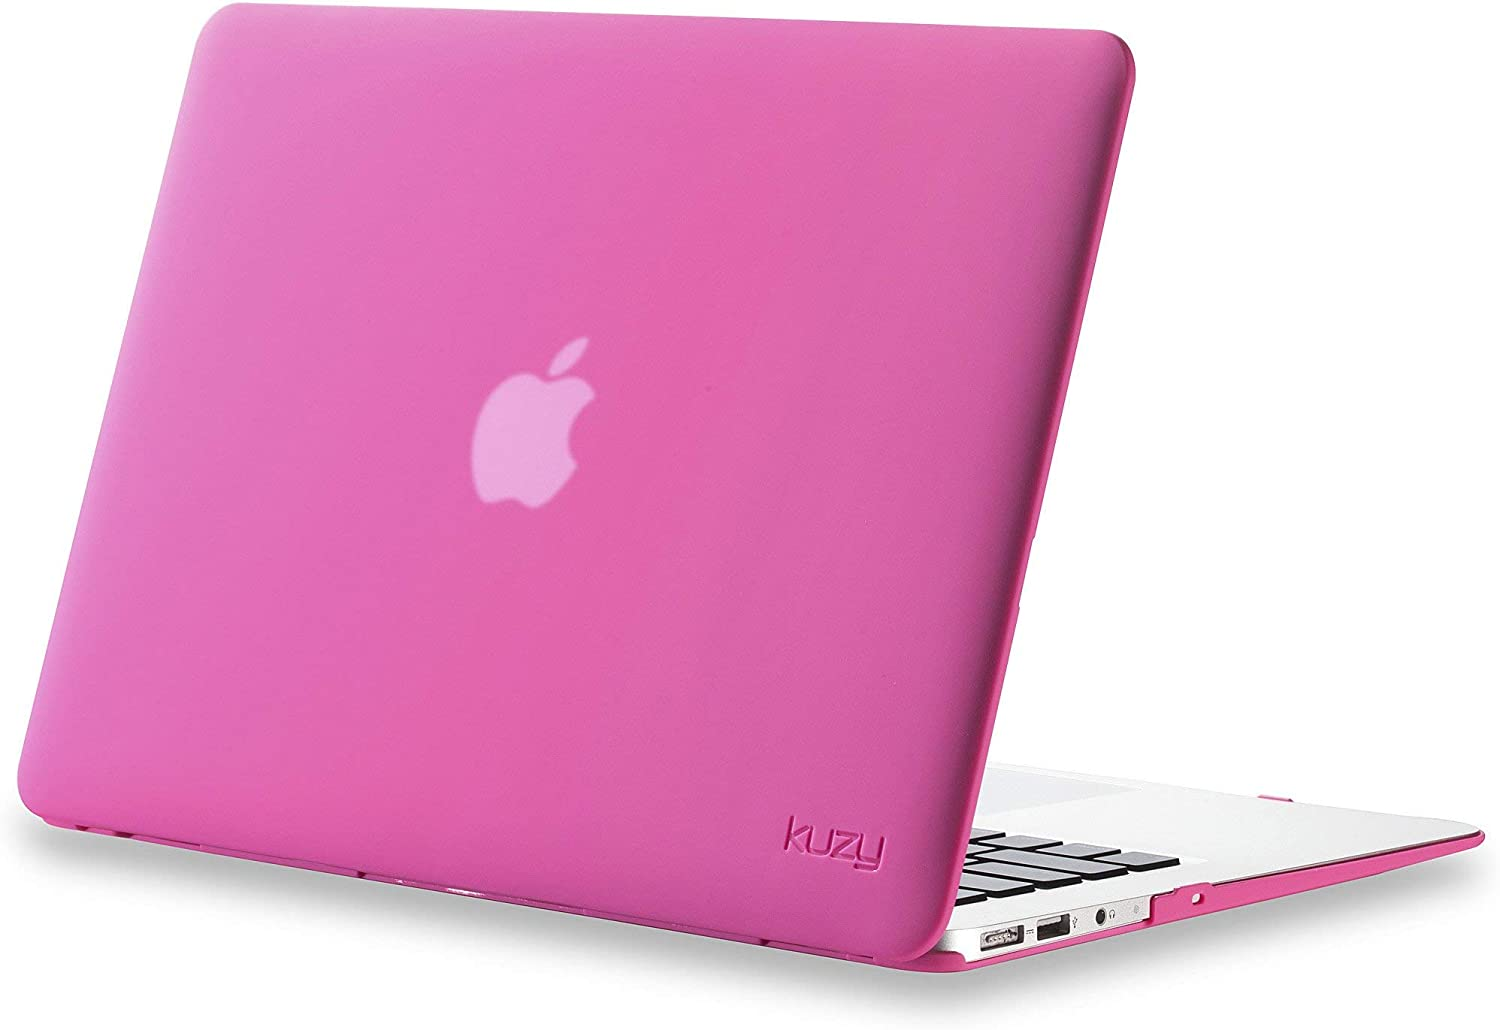 Kuzy MacBook Air 13 inch Case A1466 A1369 Soft Touch Cover for Older Version 2017 2016 2015 Hard Shell, Neon Pink